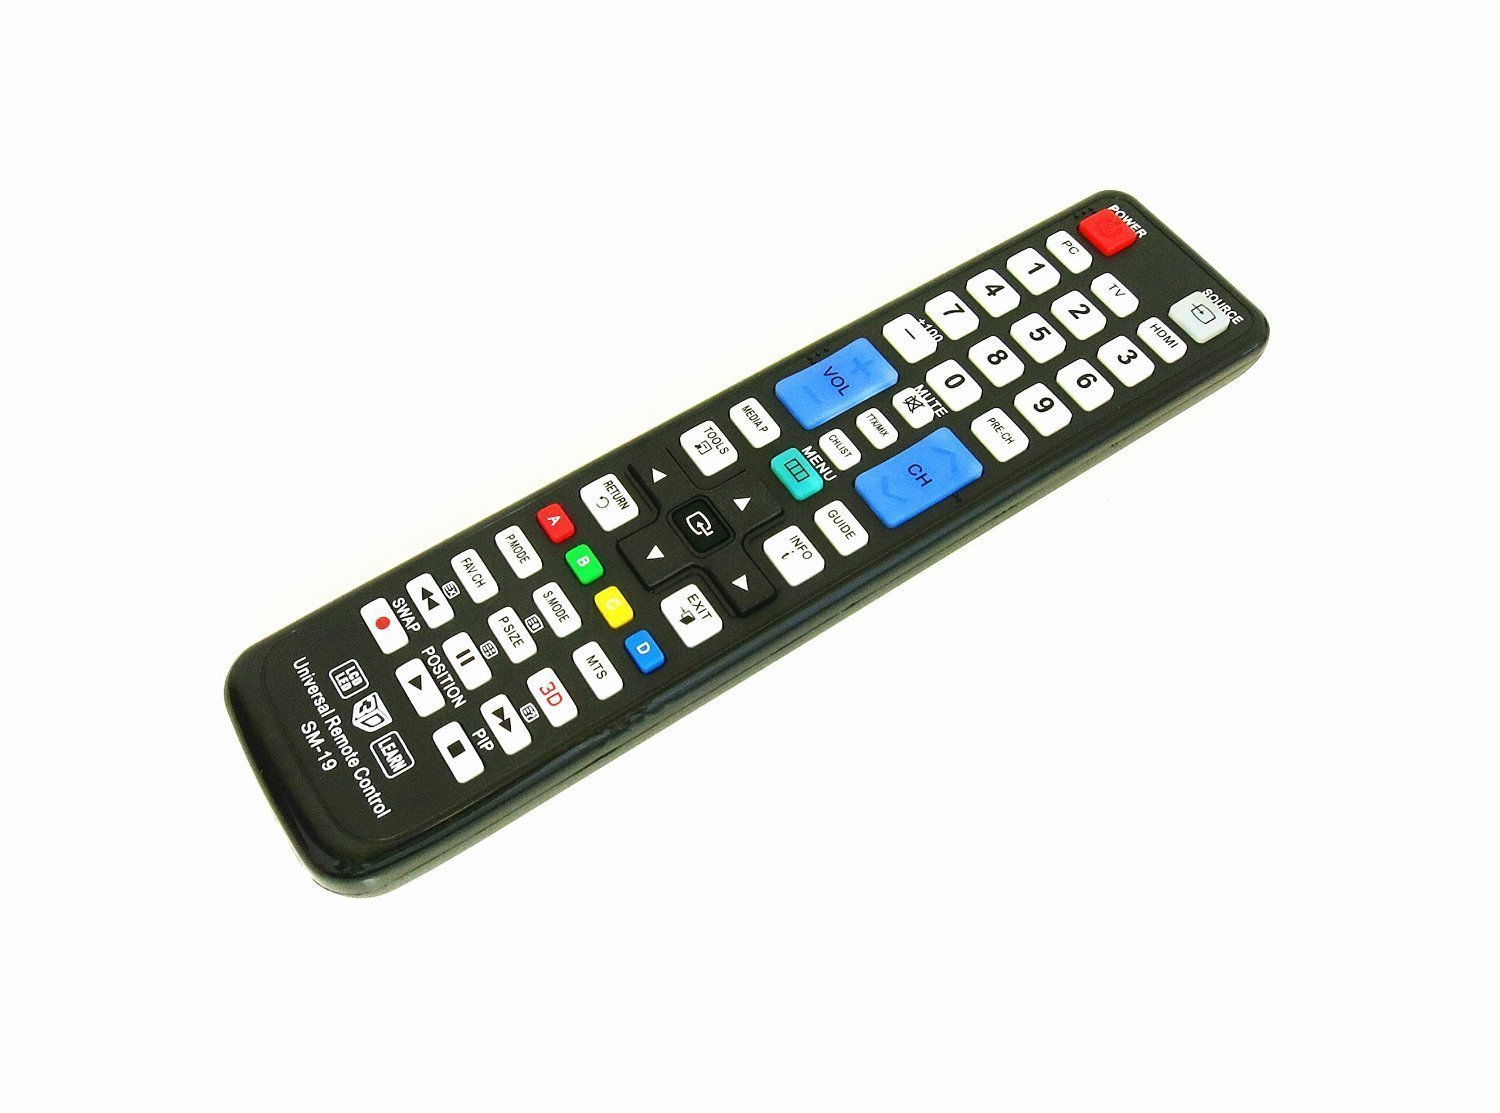 New Samasung BN59-00996A Universal Remote Control for All Samsung BRAND TV, Smart TV - 1 Year Warranty(SM-19+AL) by Nettech